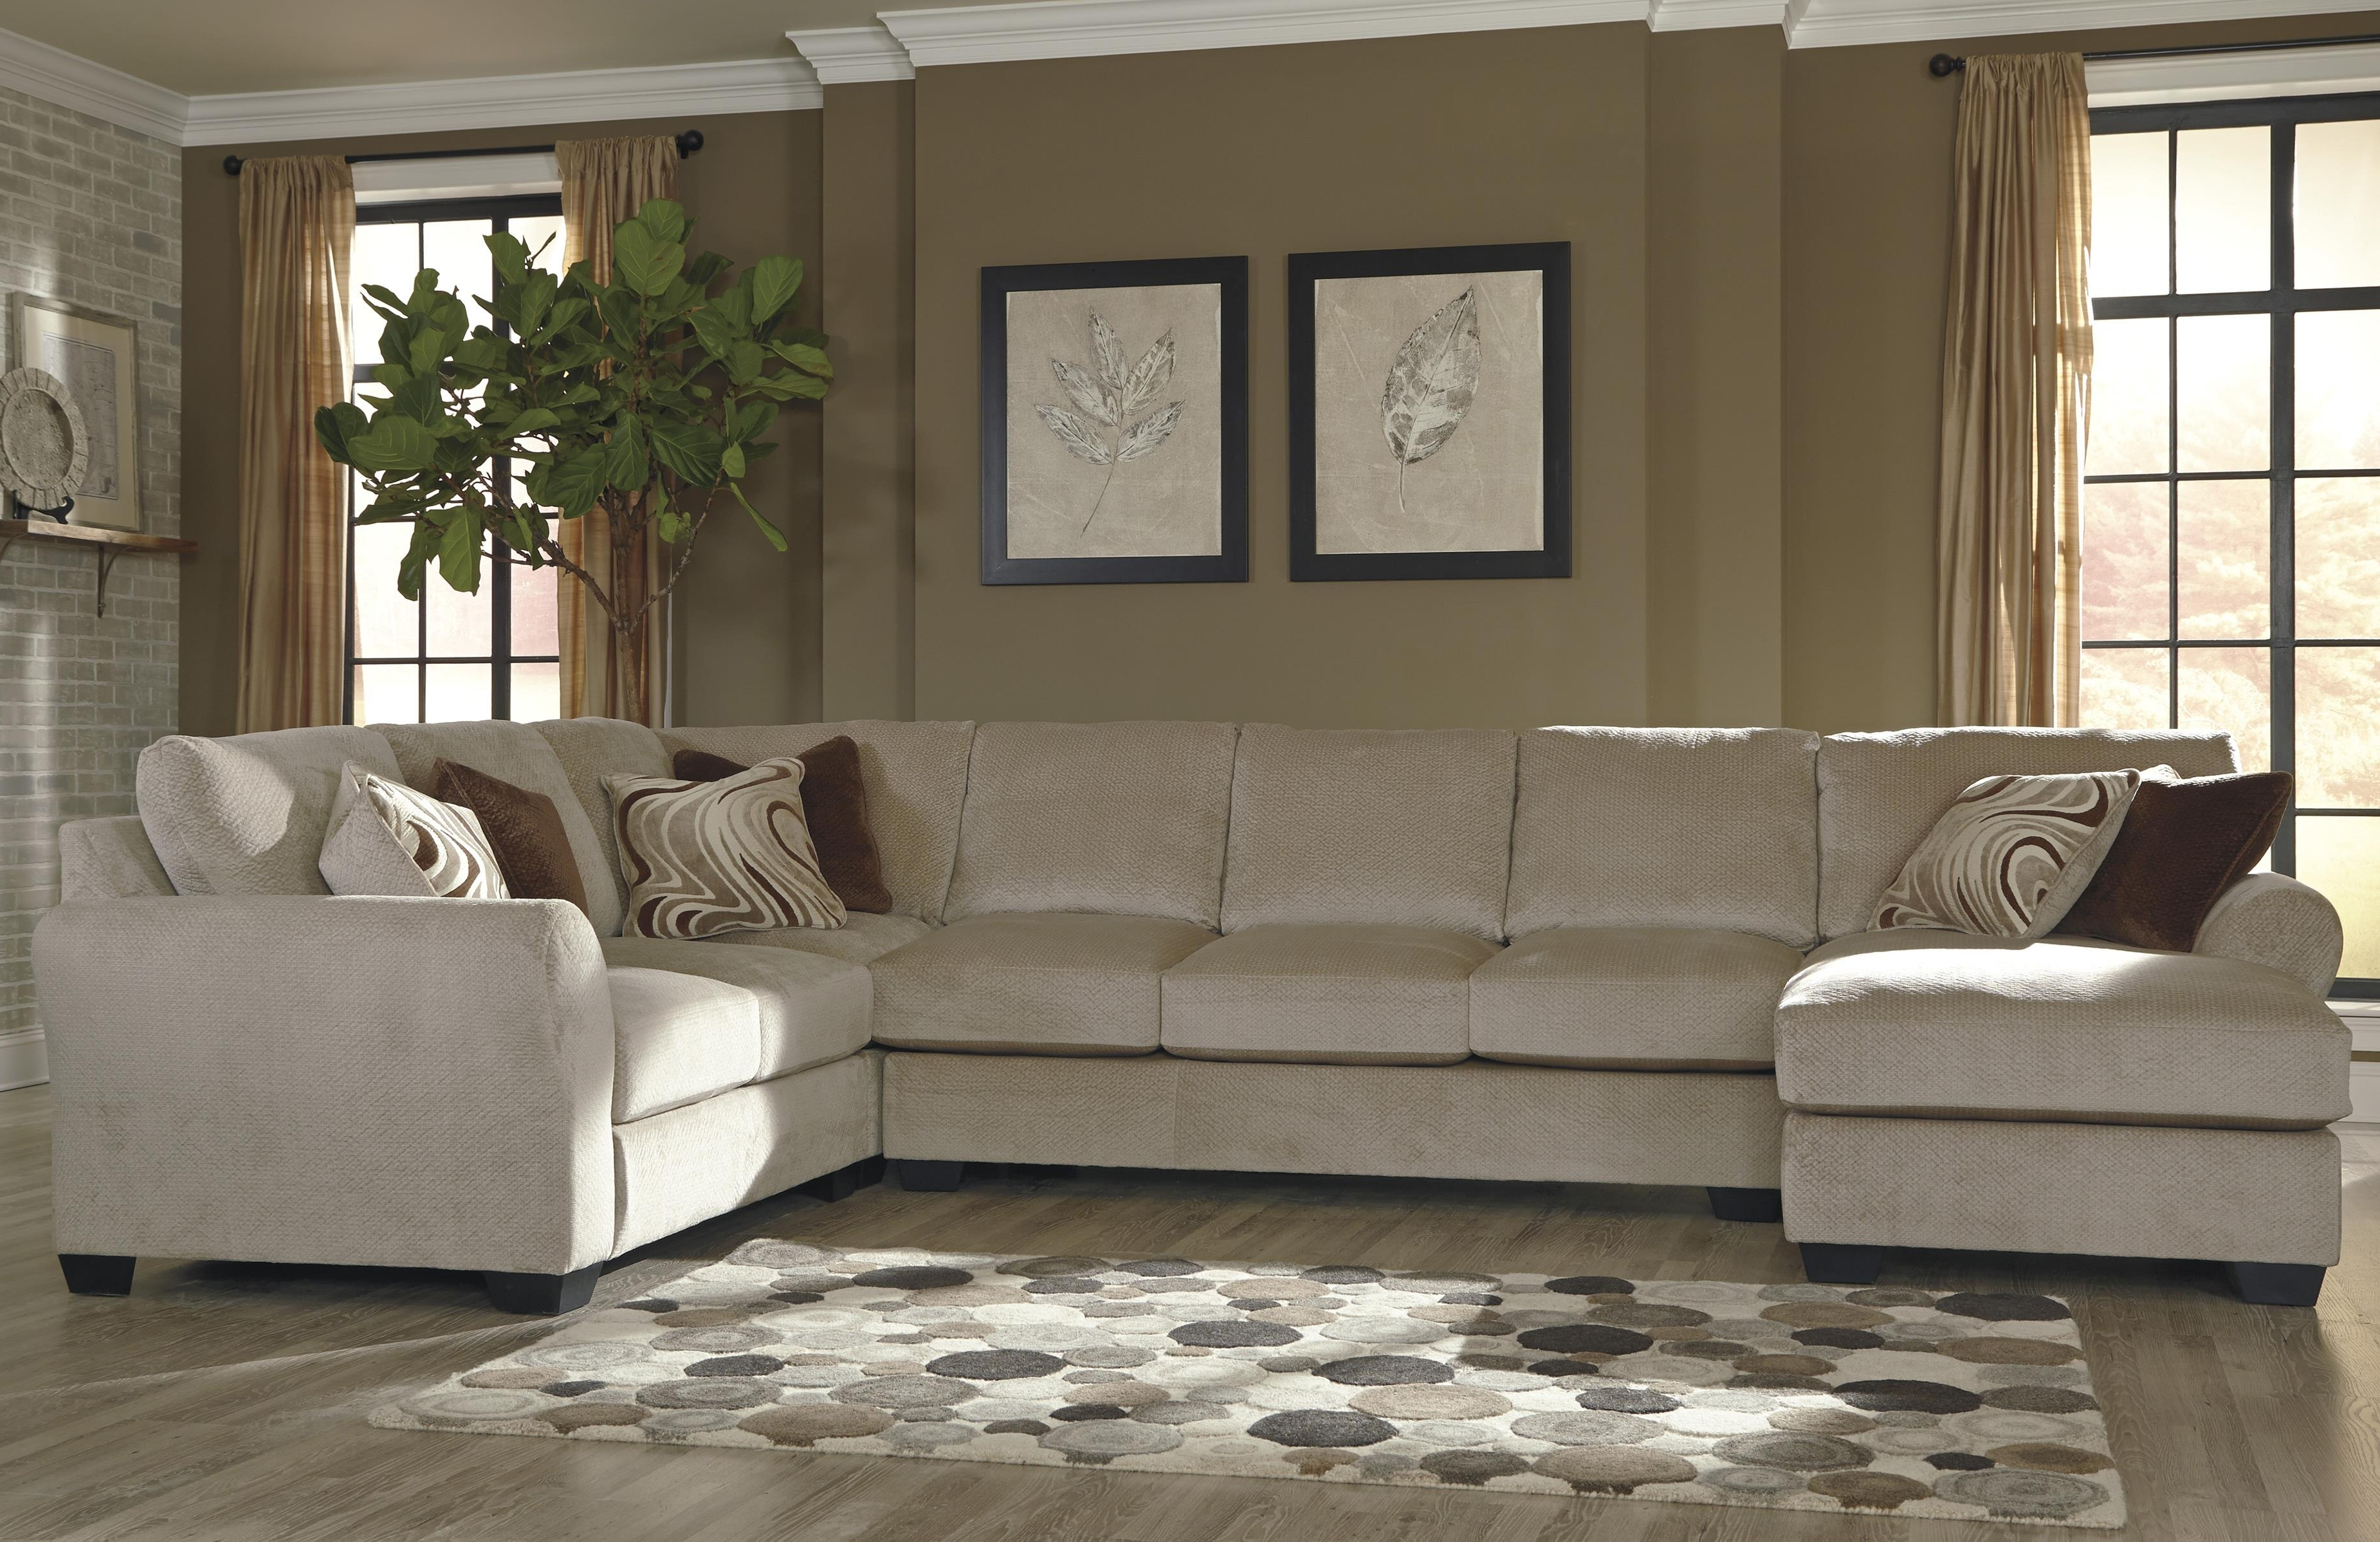 Well Known 4 Piece Sectional W/ Armless Sofa & Left Chaisebenchcraft Regarding 4 Piece Sectional Sofas With Chaise (View 12 of 15)